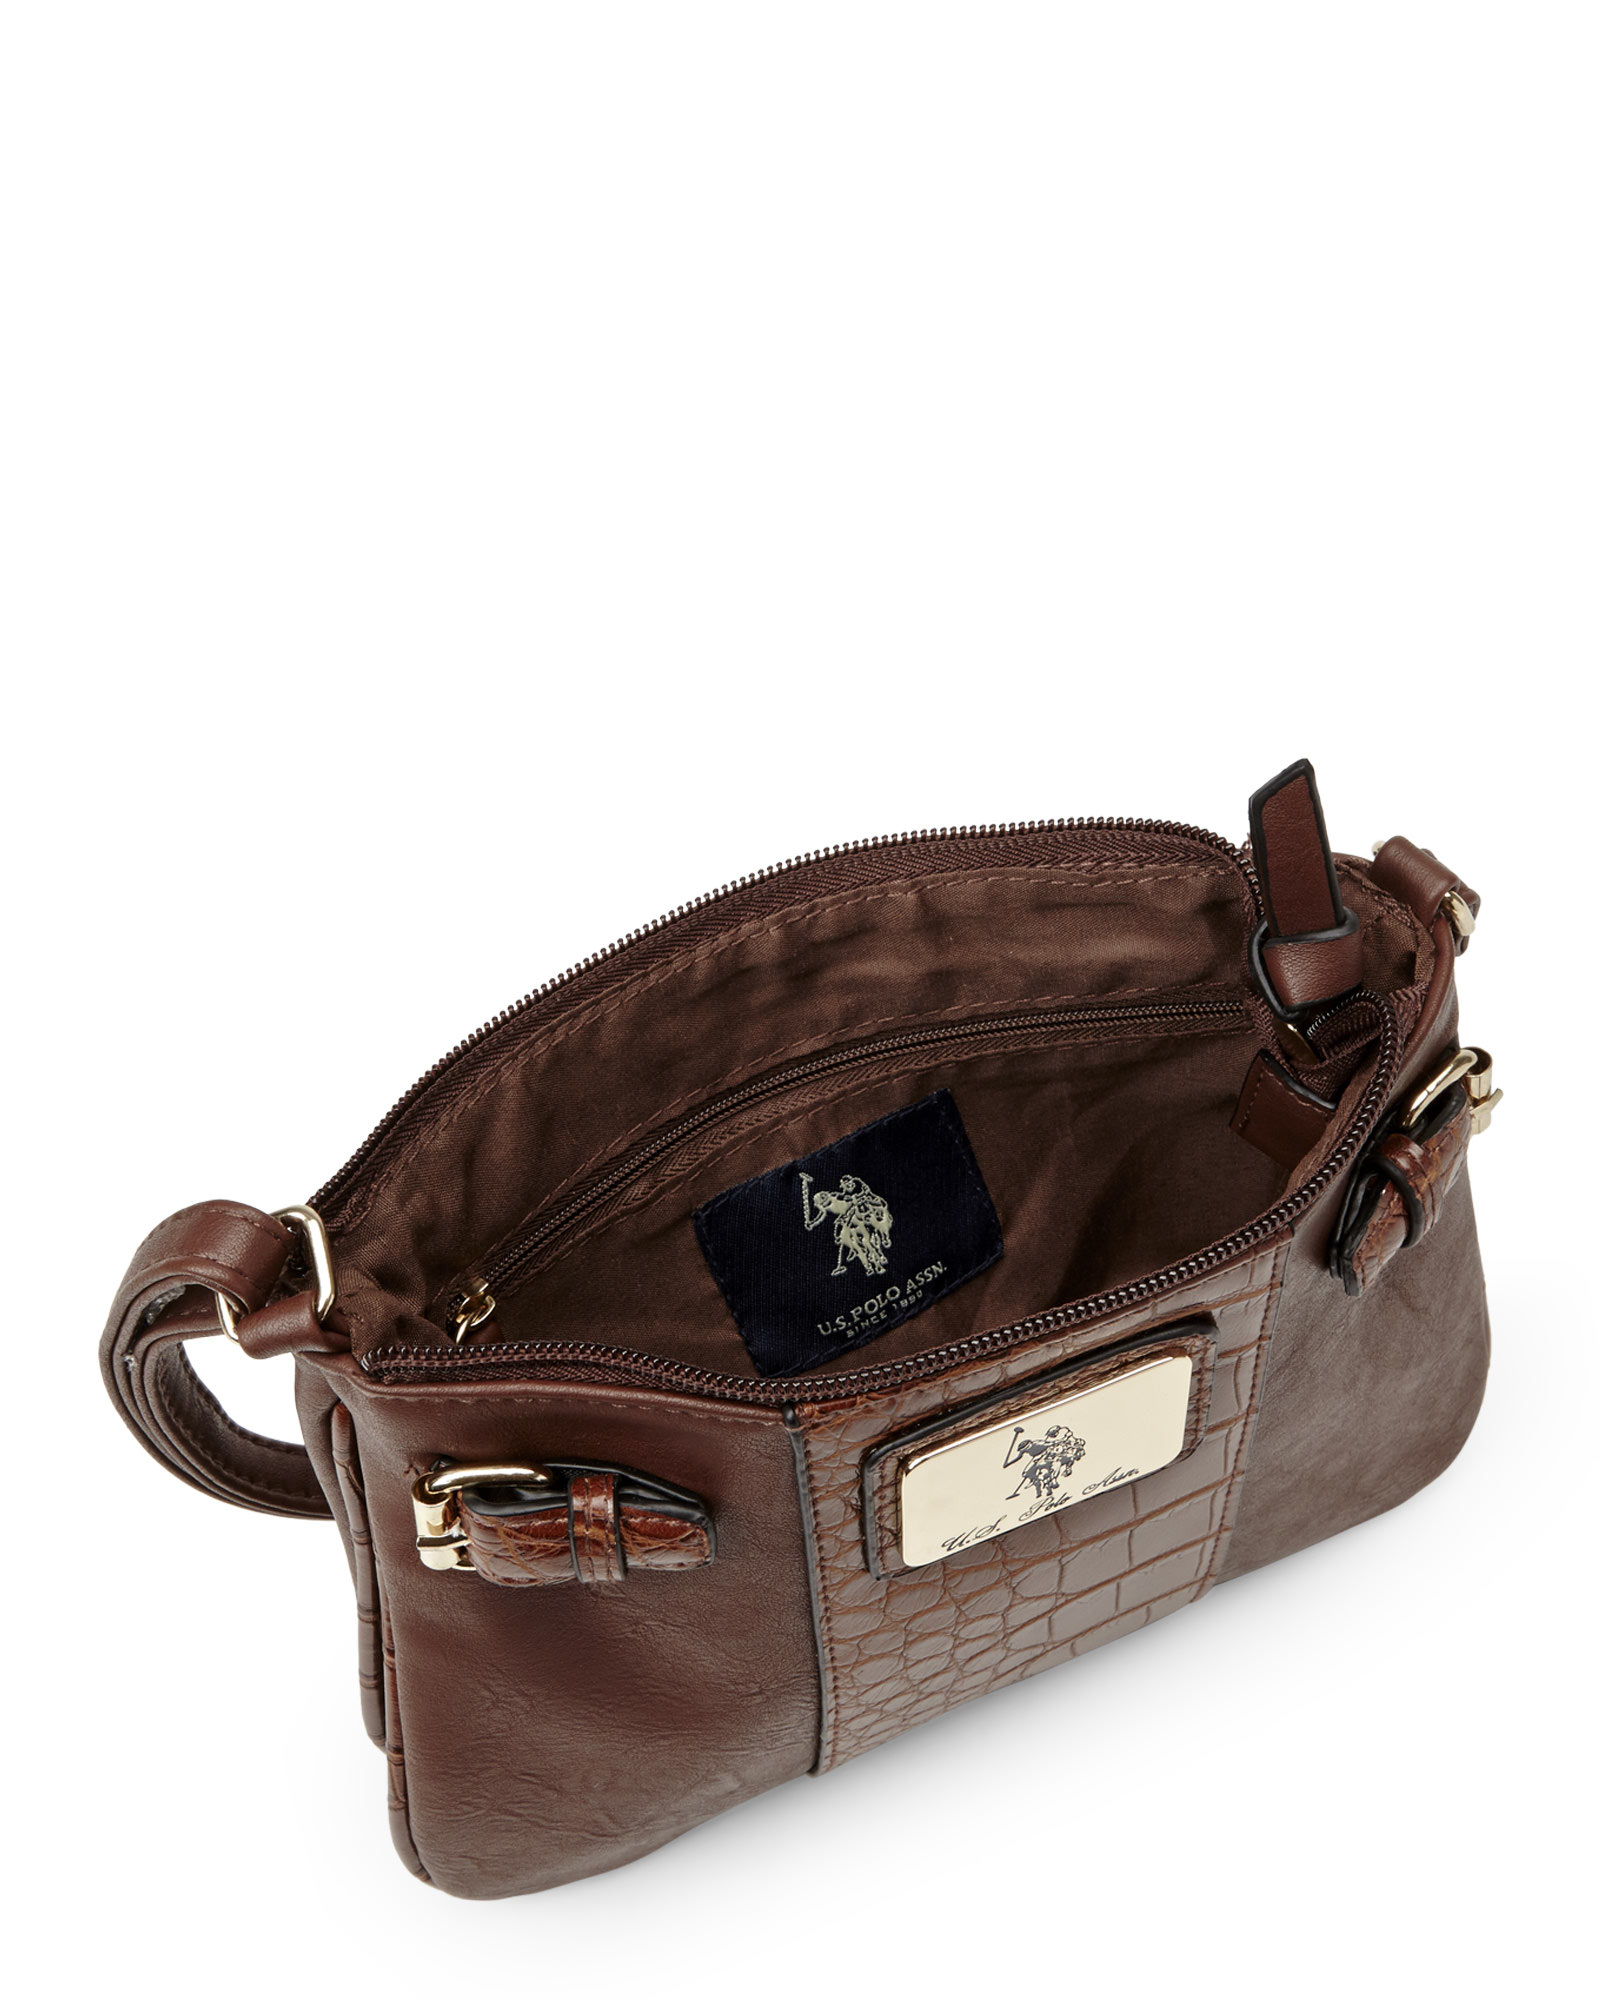 9666e0282801 Lyst - U.S. POLO ASSN. Chocolate Dillon Classic Saddle Bag in Brown